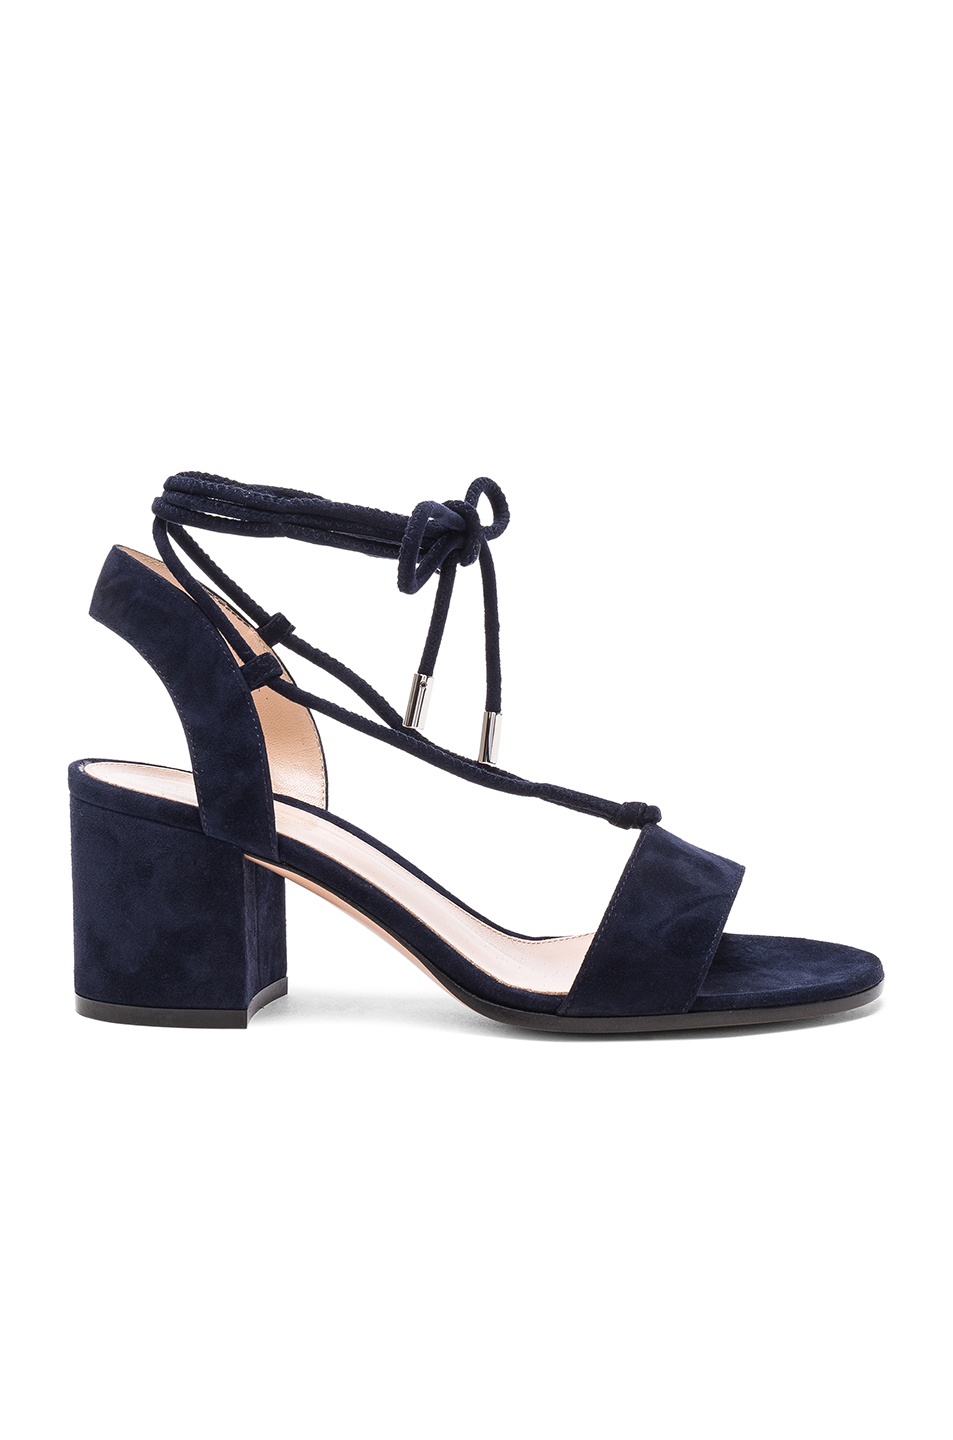 Gianvito Rossi Suede Lace Up Leather Sandals in Blue